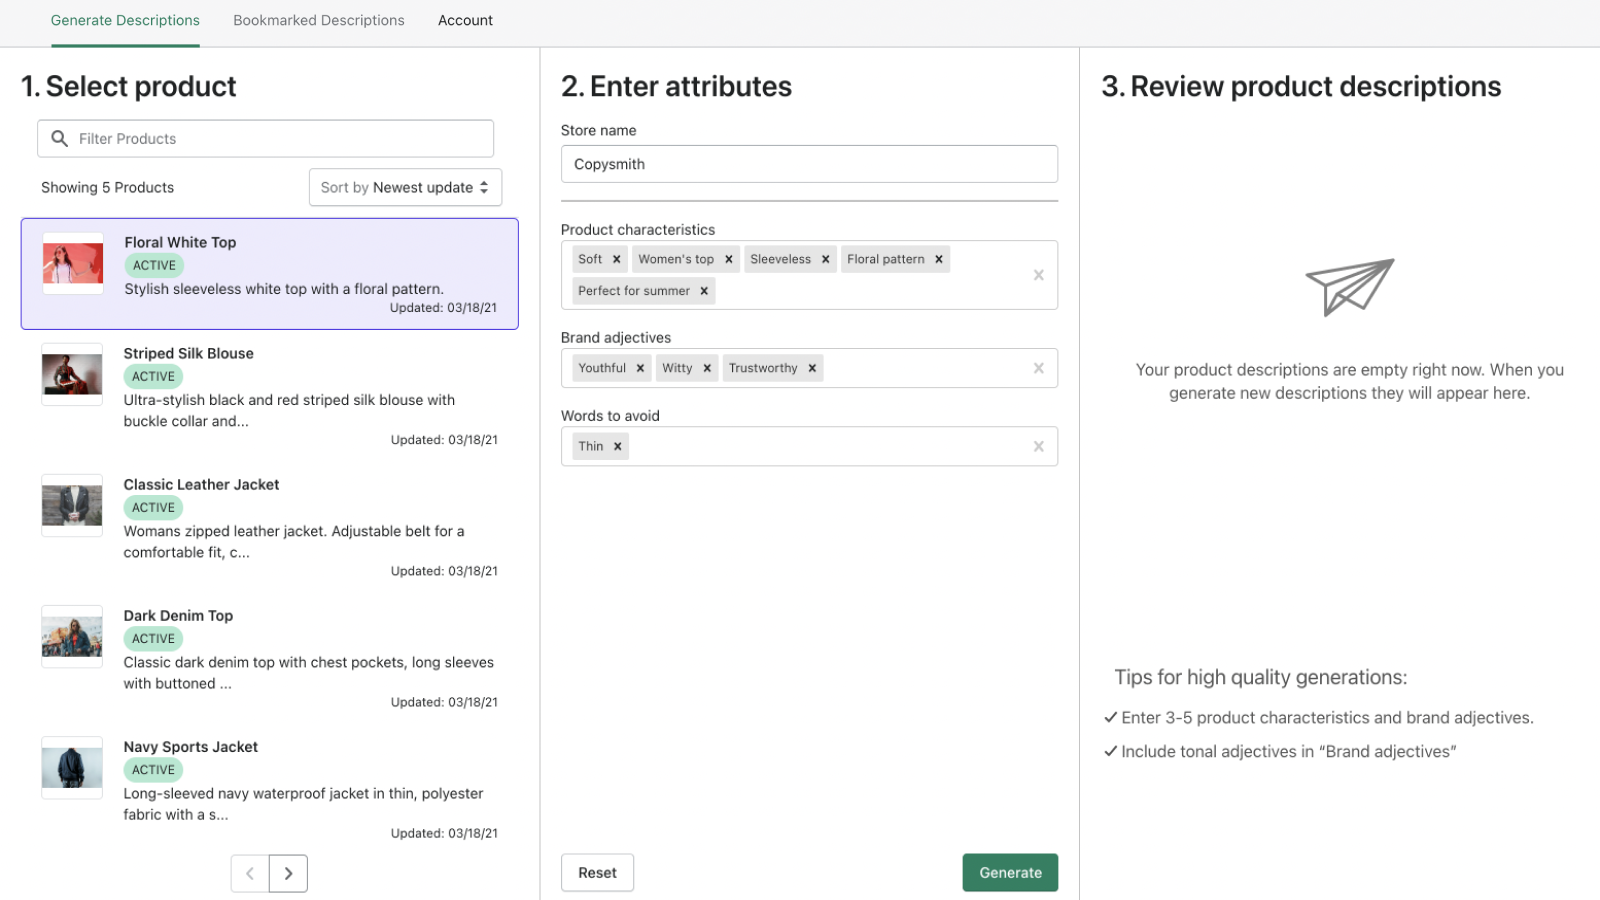 Select product on right, enter keywords, and click generate.